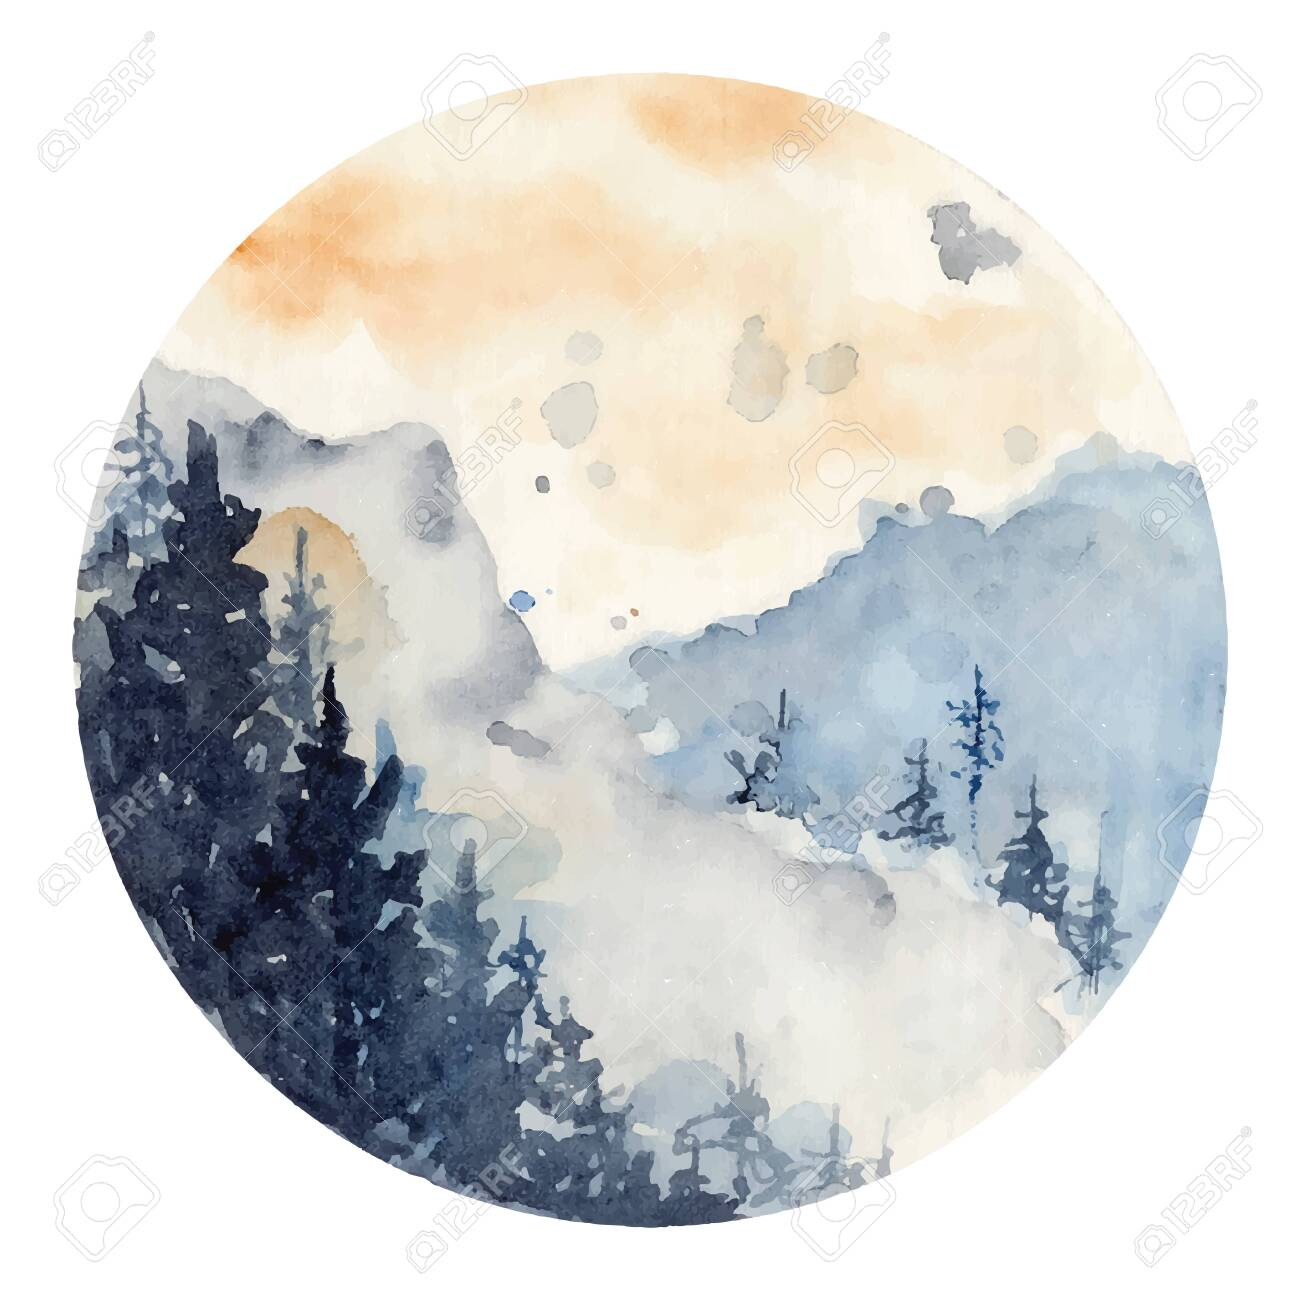 Watercolor Landscape With Pine And Fir Trees And Mountains Abstract Royalty Free Cliparts Vectors And Stock Illustration Image 136982557